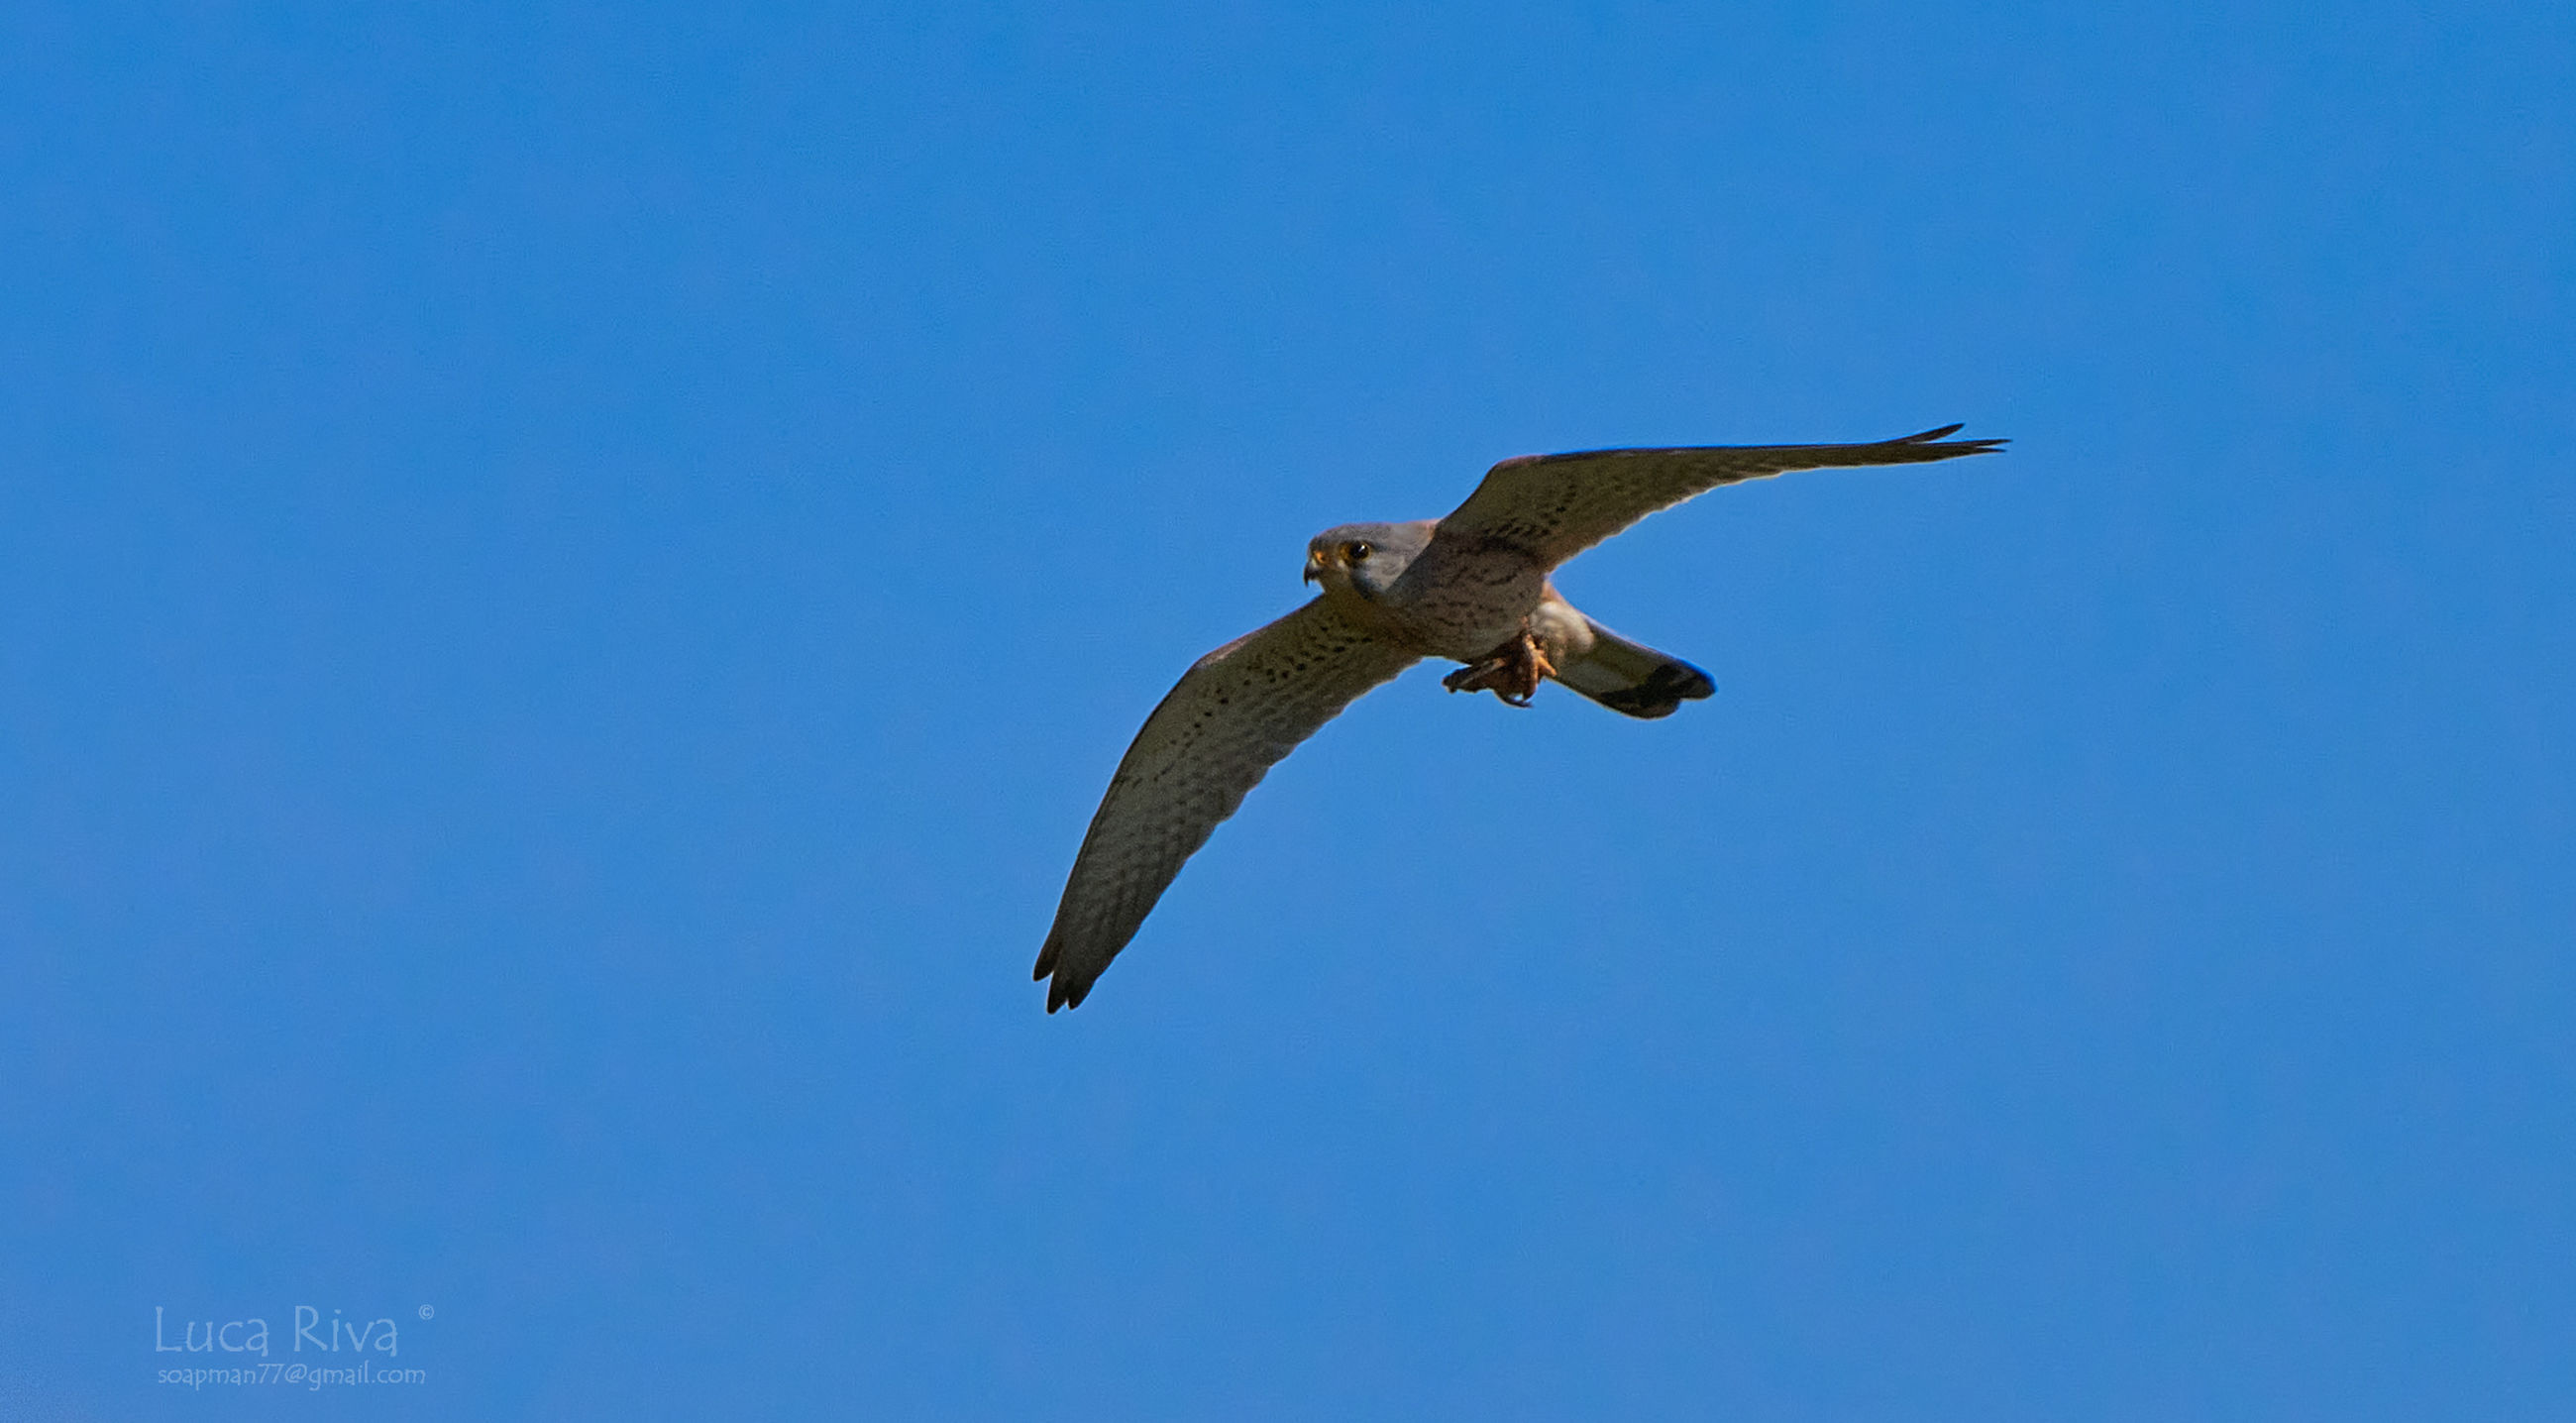 animal themes, animal, bird, animal wildlife, flying, wildlife, one animal, spread wings, blue, sky, clear sky, mid-air, bird of prey, animal body part, no people, nature, low angle view, wing, motion, copy space, falcon, day, outdoors, full length, sunny